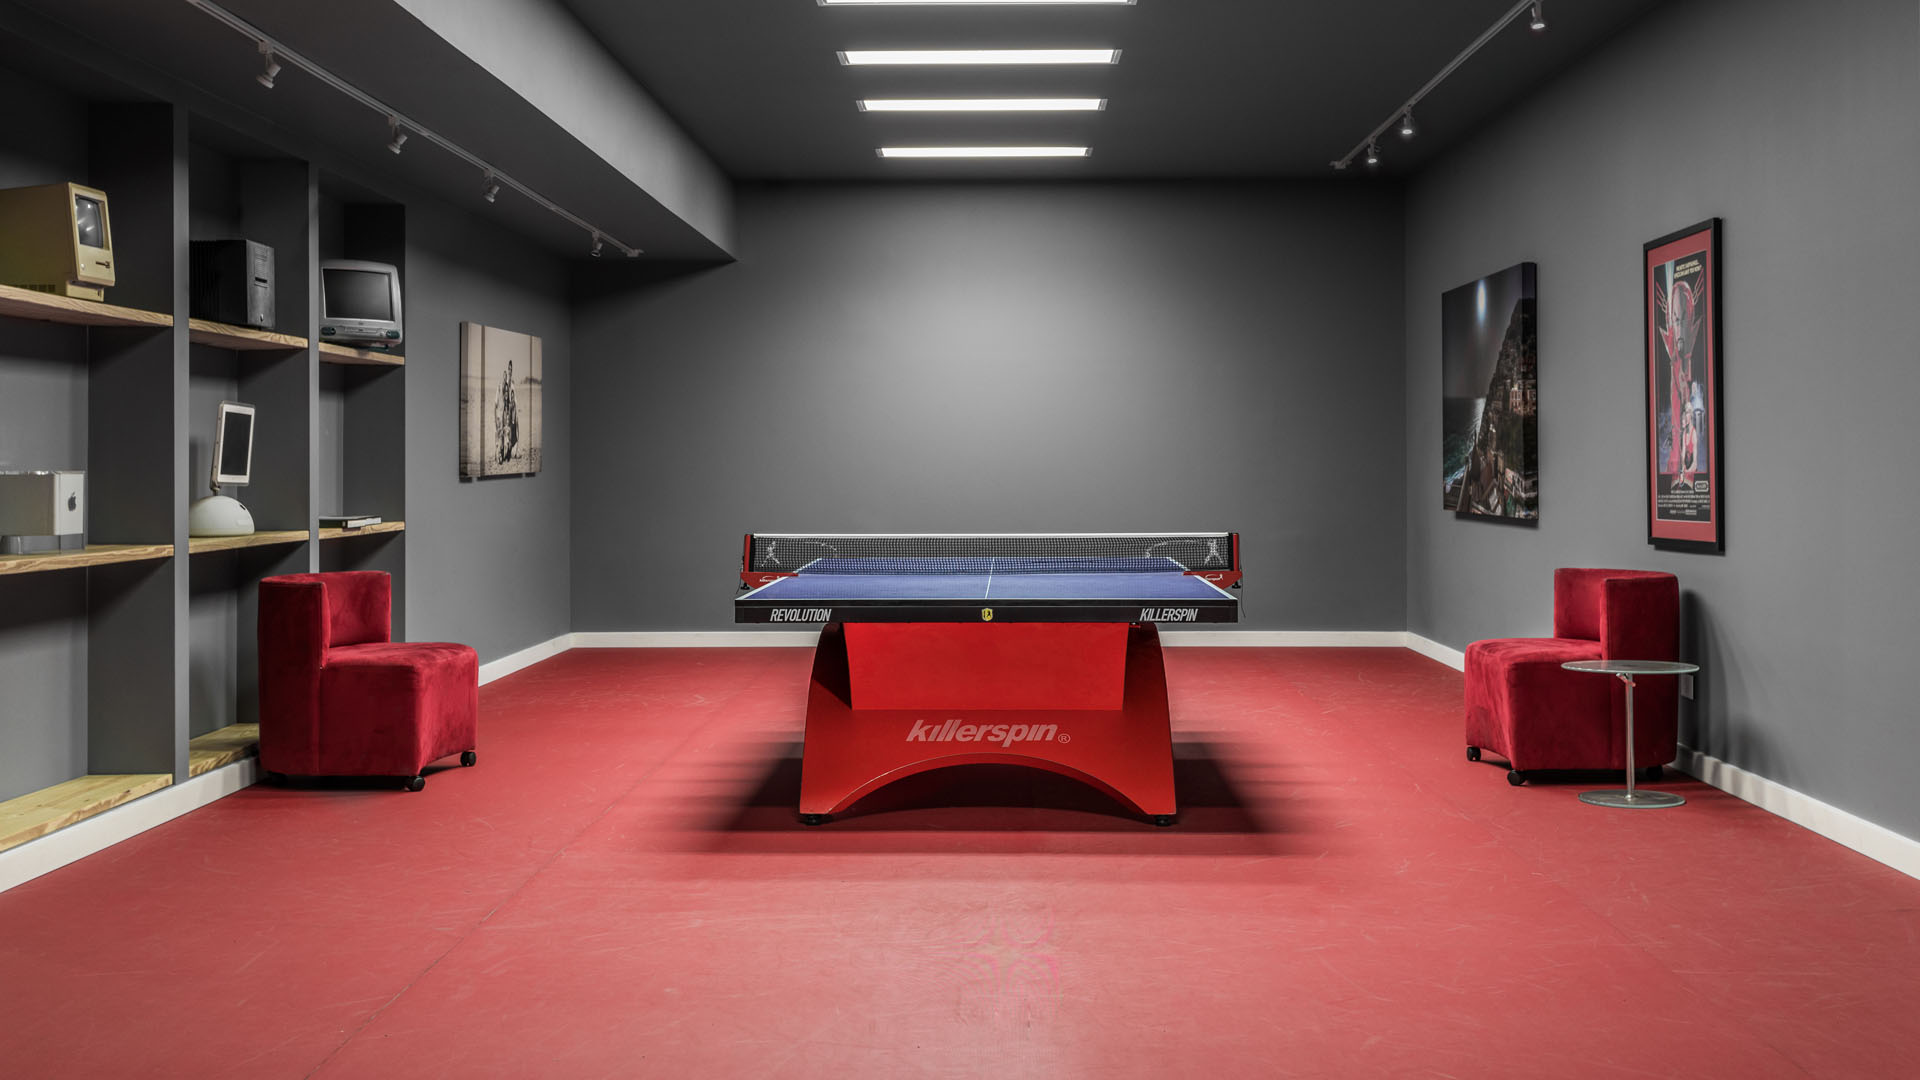 Lower Level table tennis room with red sports floor and vintage Apple Macintosh computer collection - New Modern House 1 (Copperwood) - Zionsville, IN